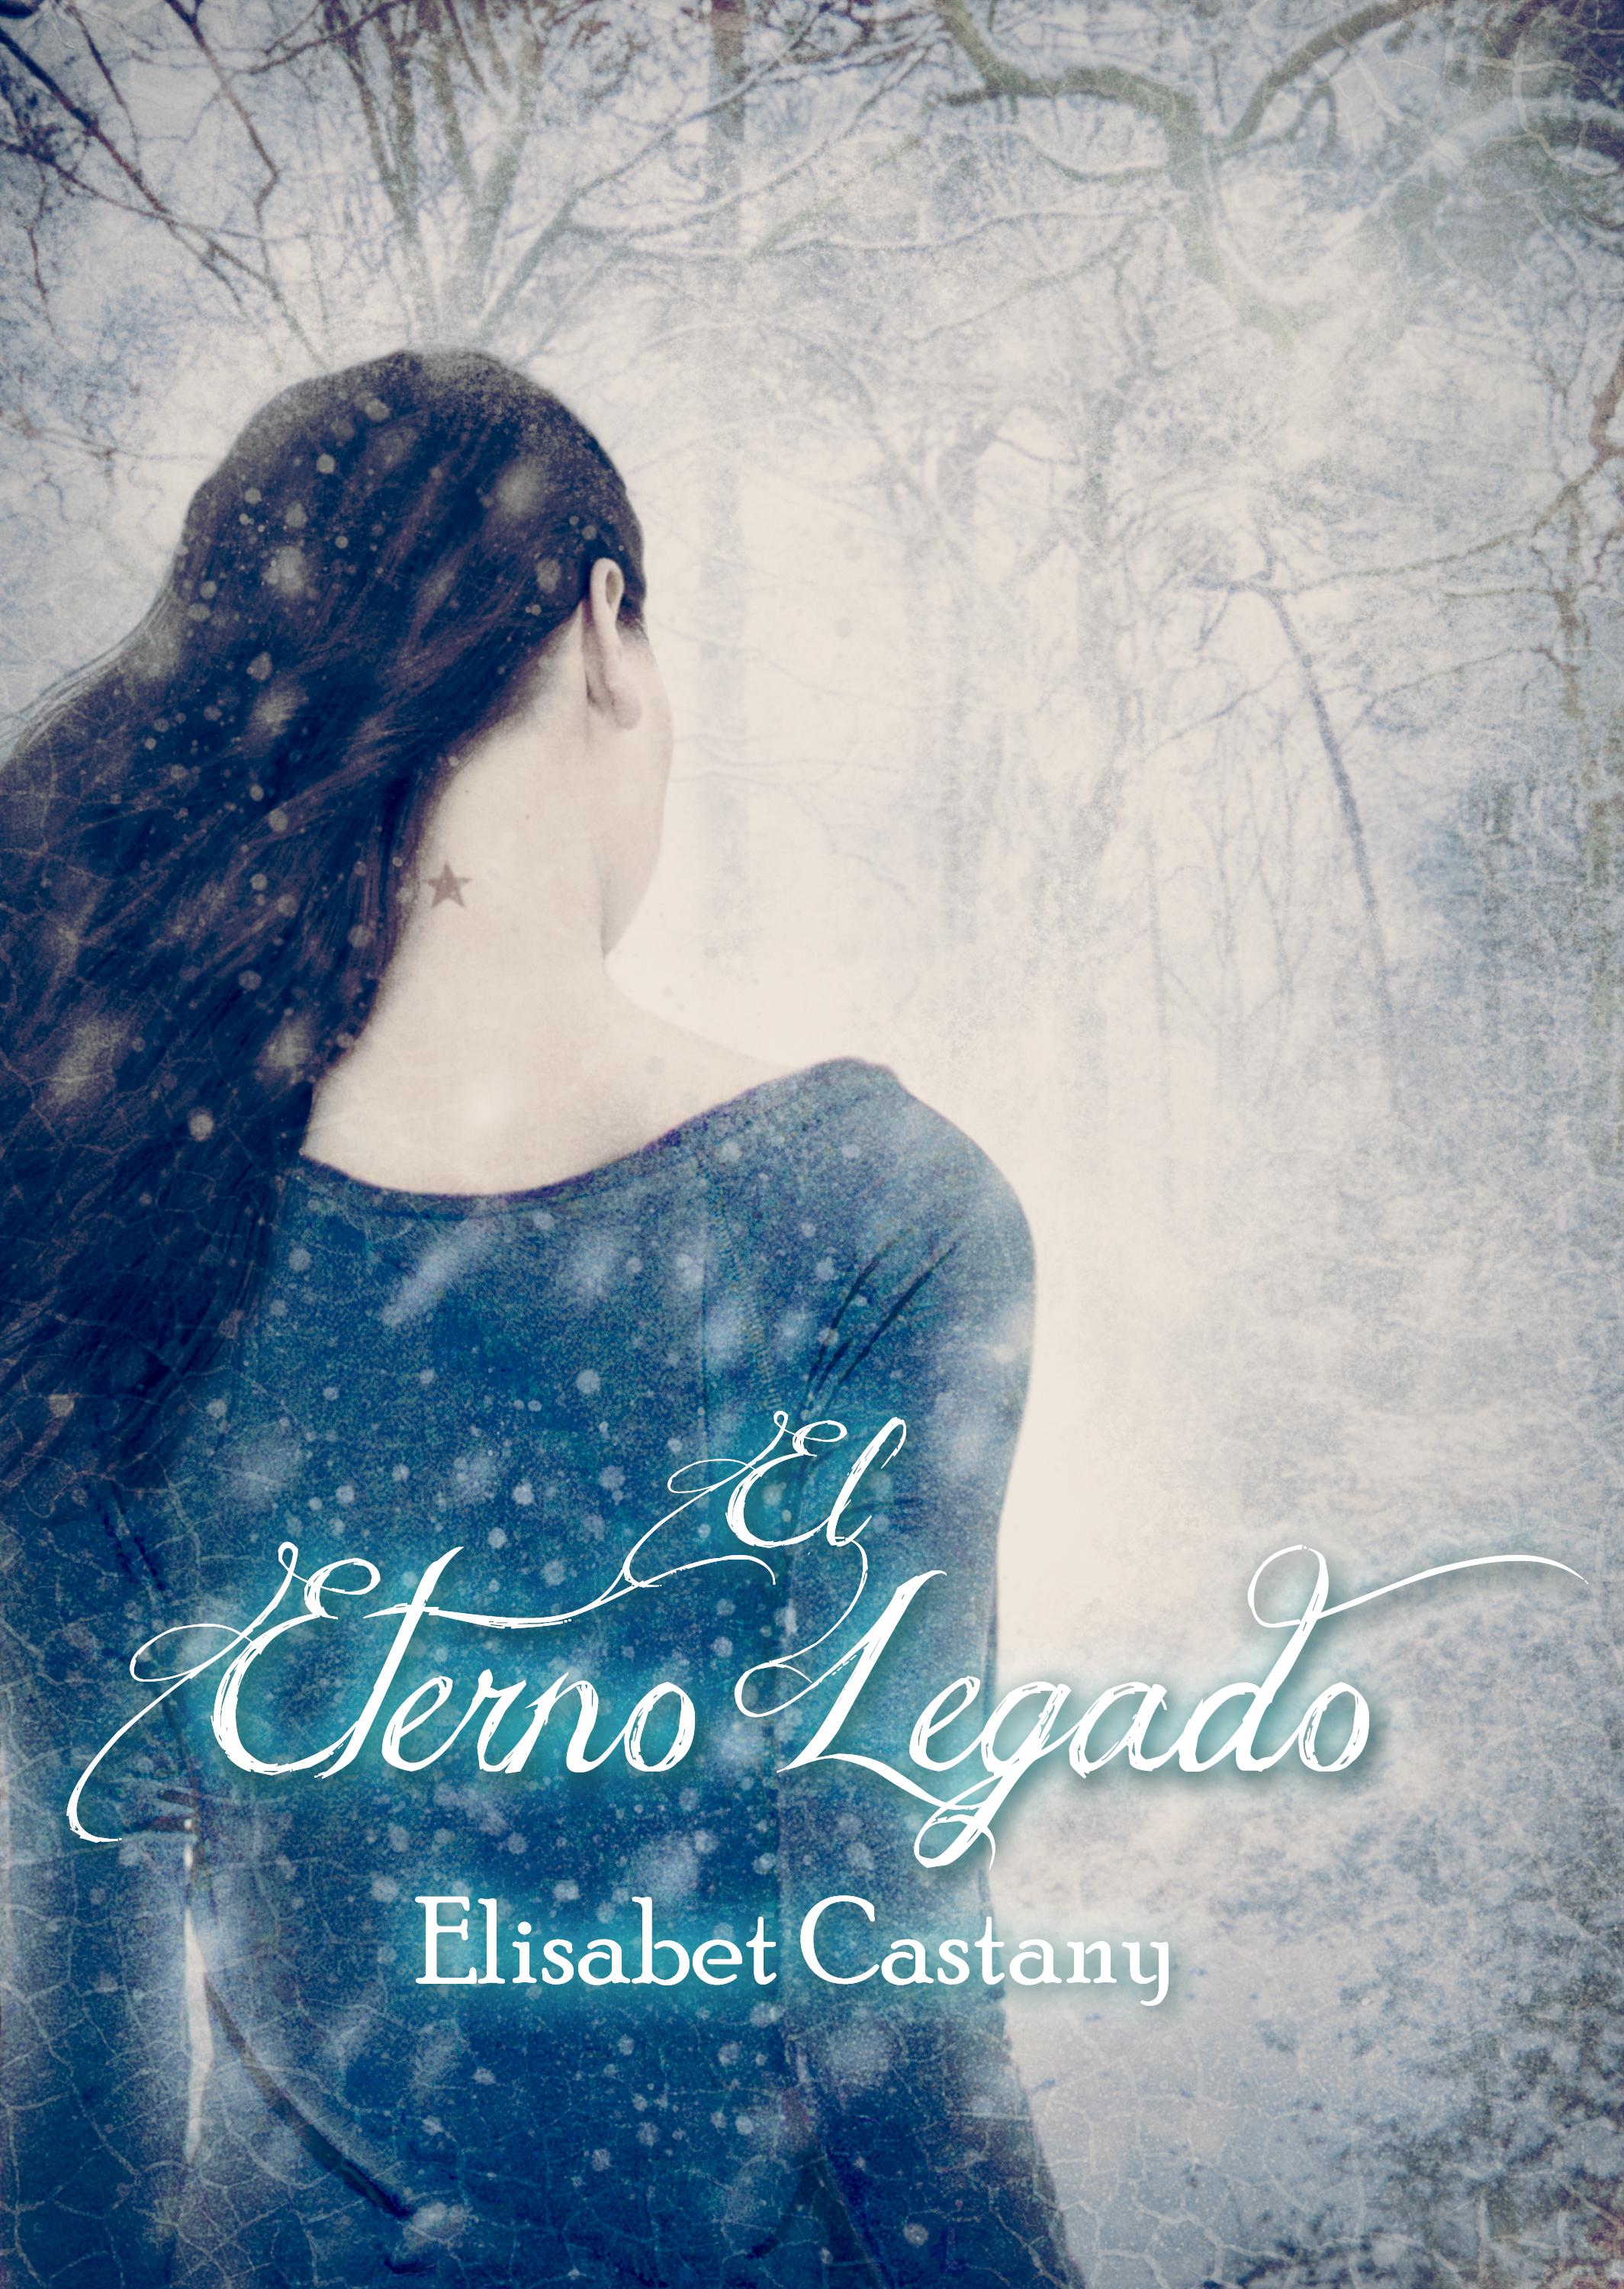 http://eleternolegado.files.wordpress.com/2014/07/el-eterno-legado.jpg